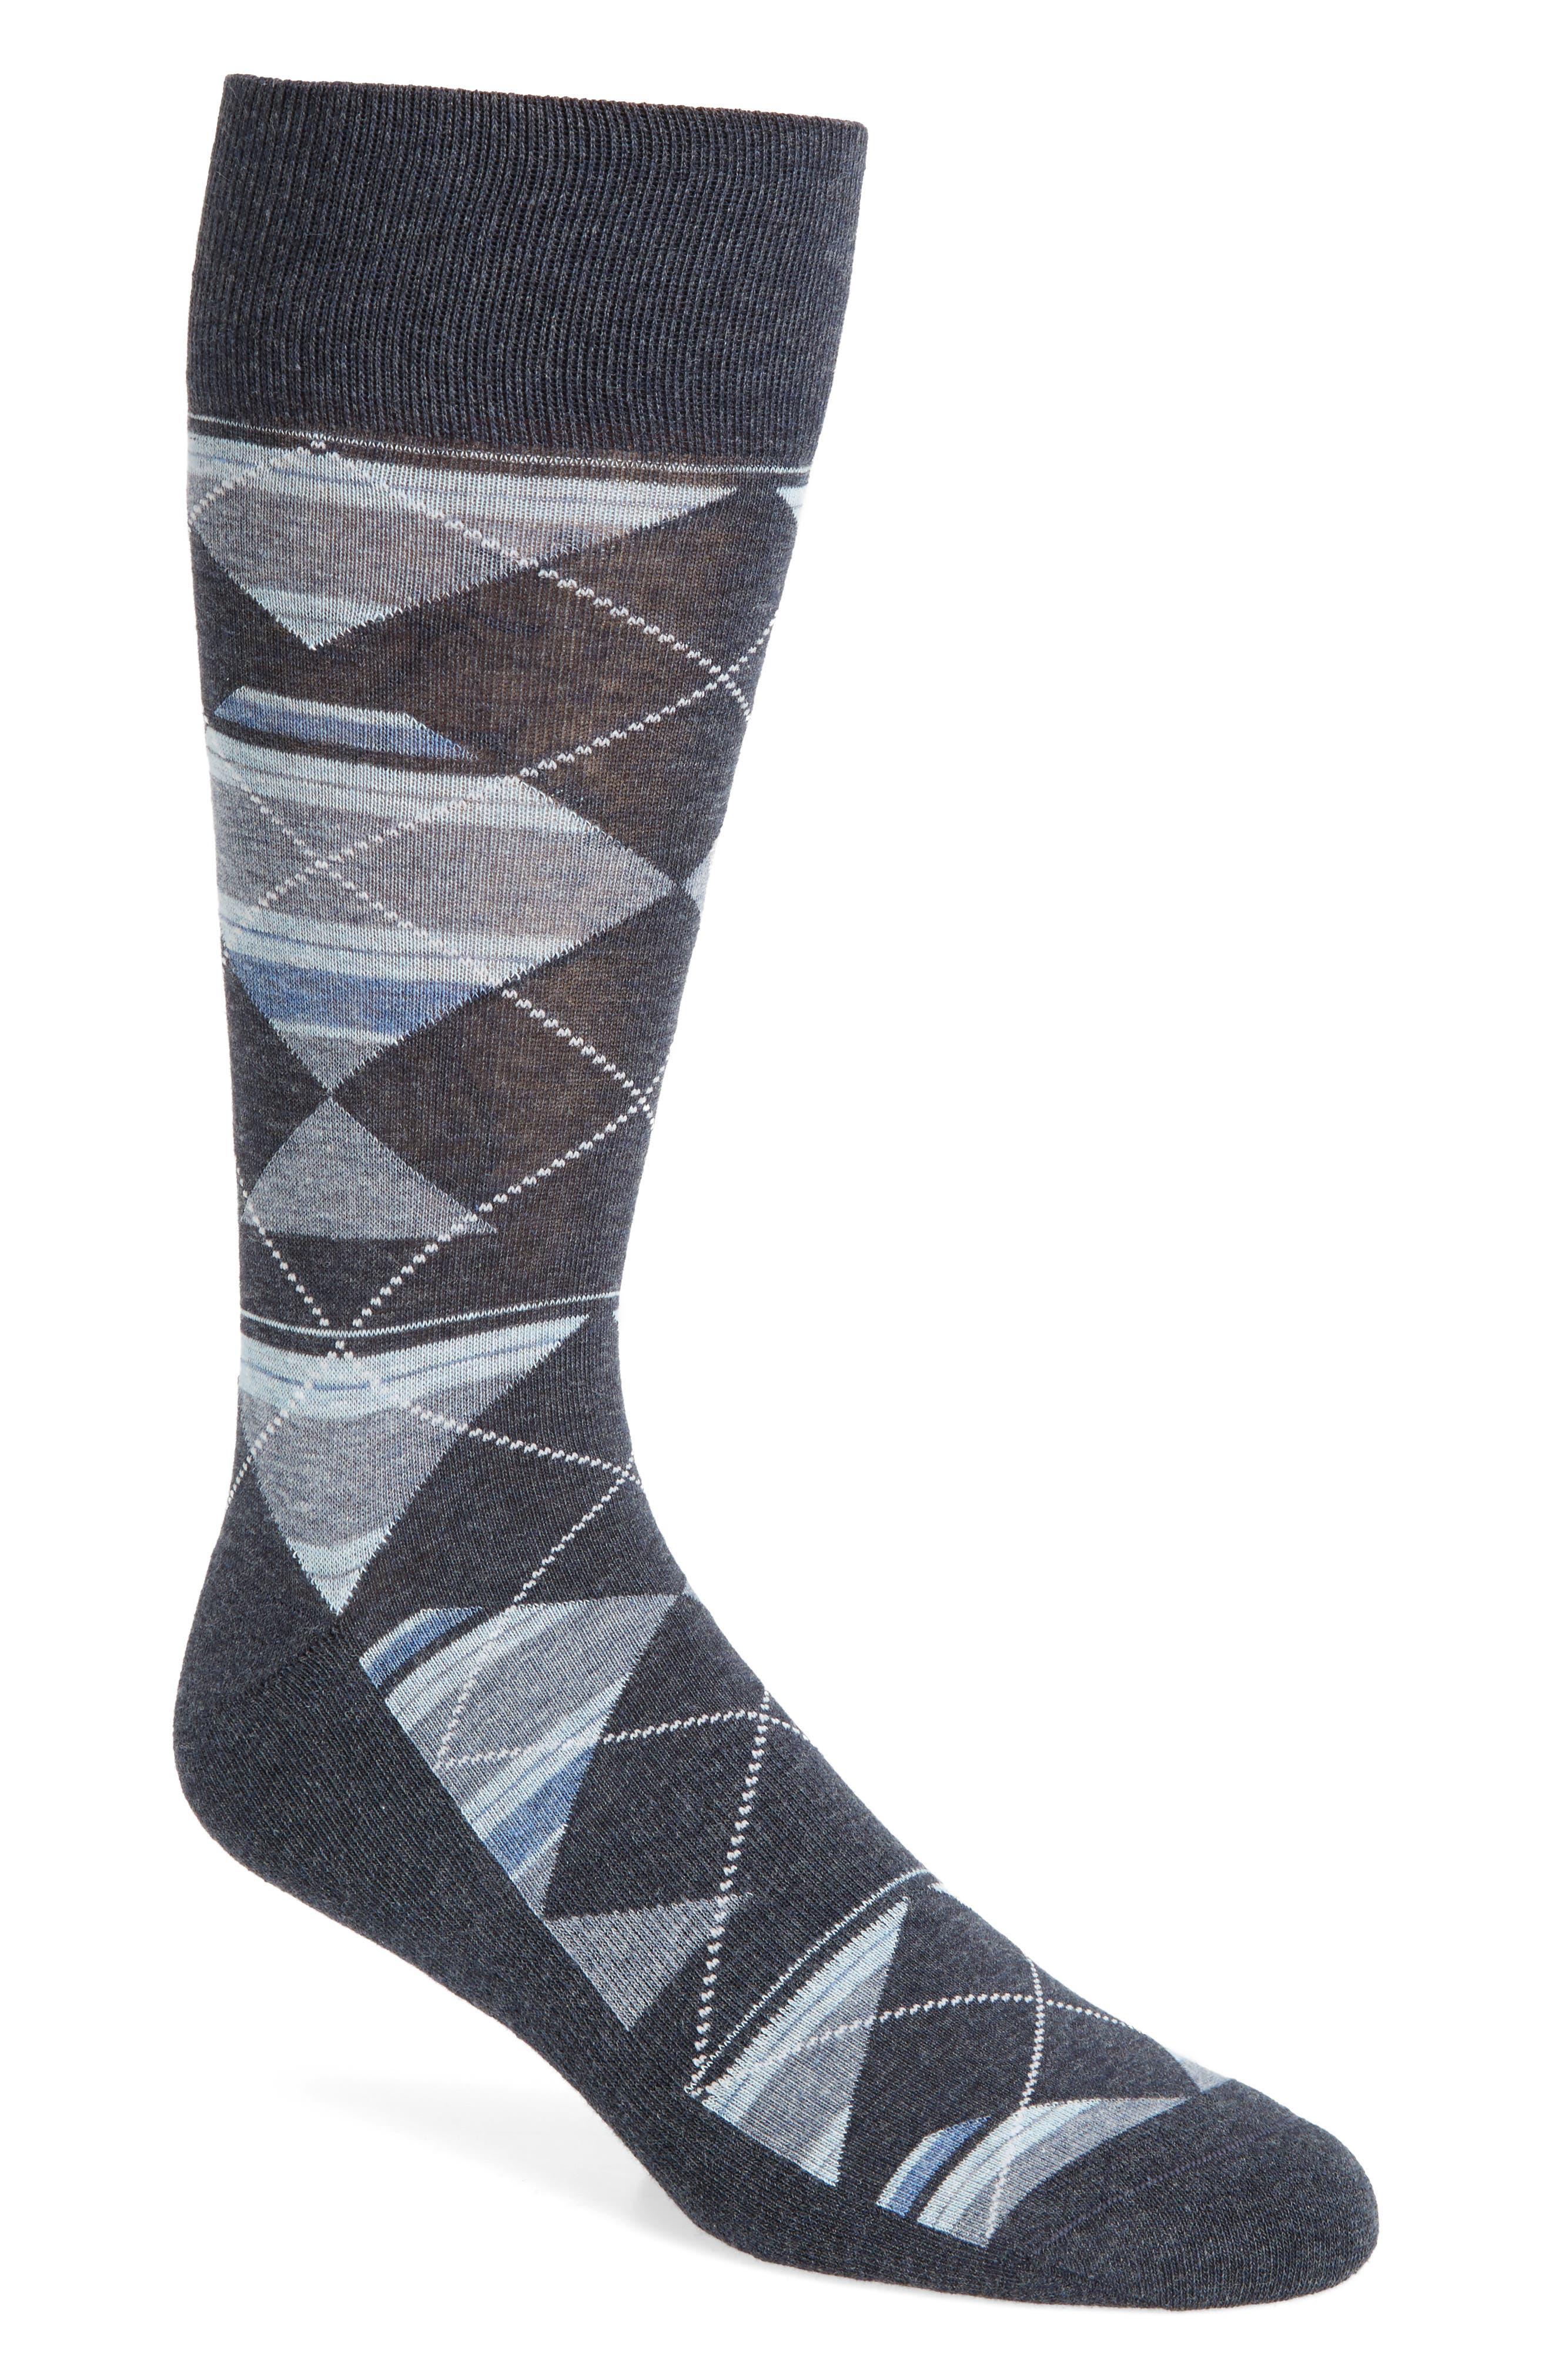 Nordstrom Men's Shop Multistripe Argyle Socks